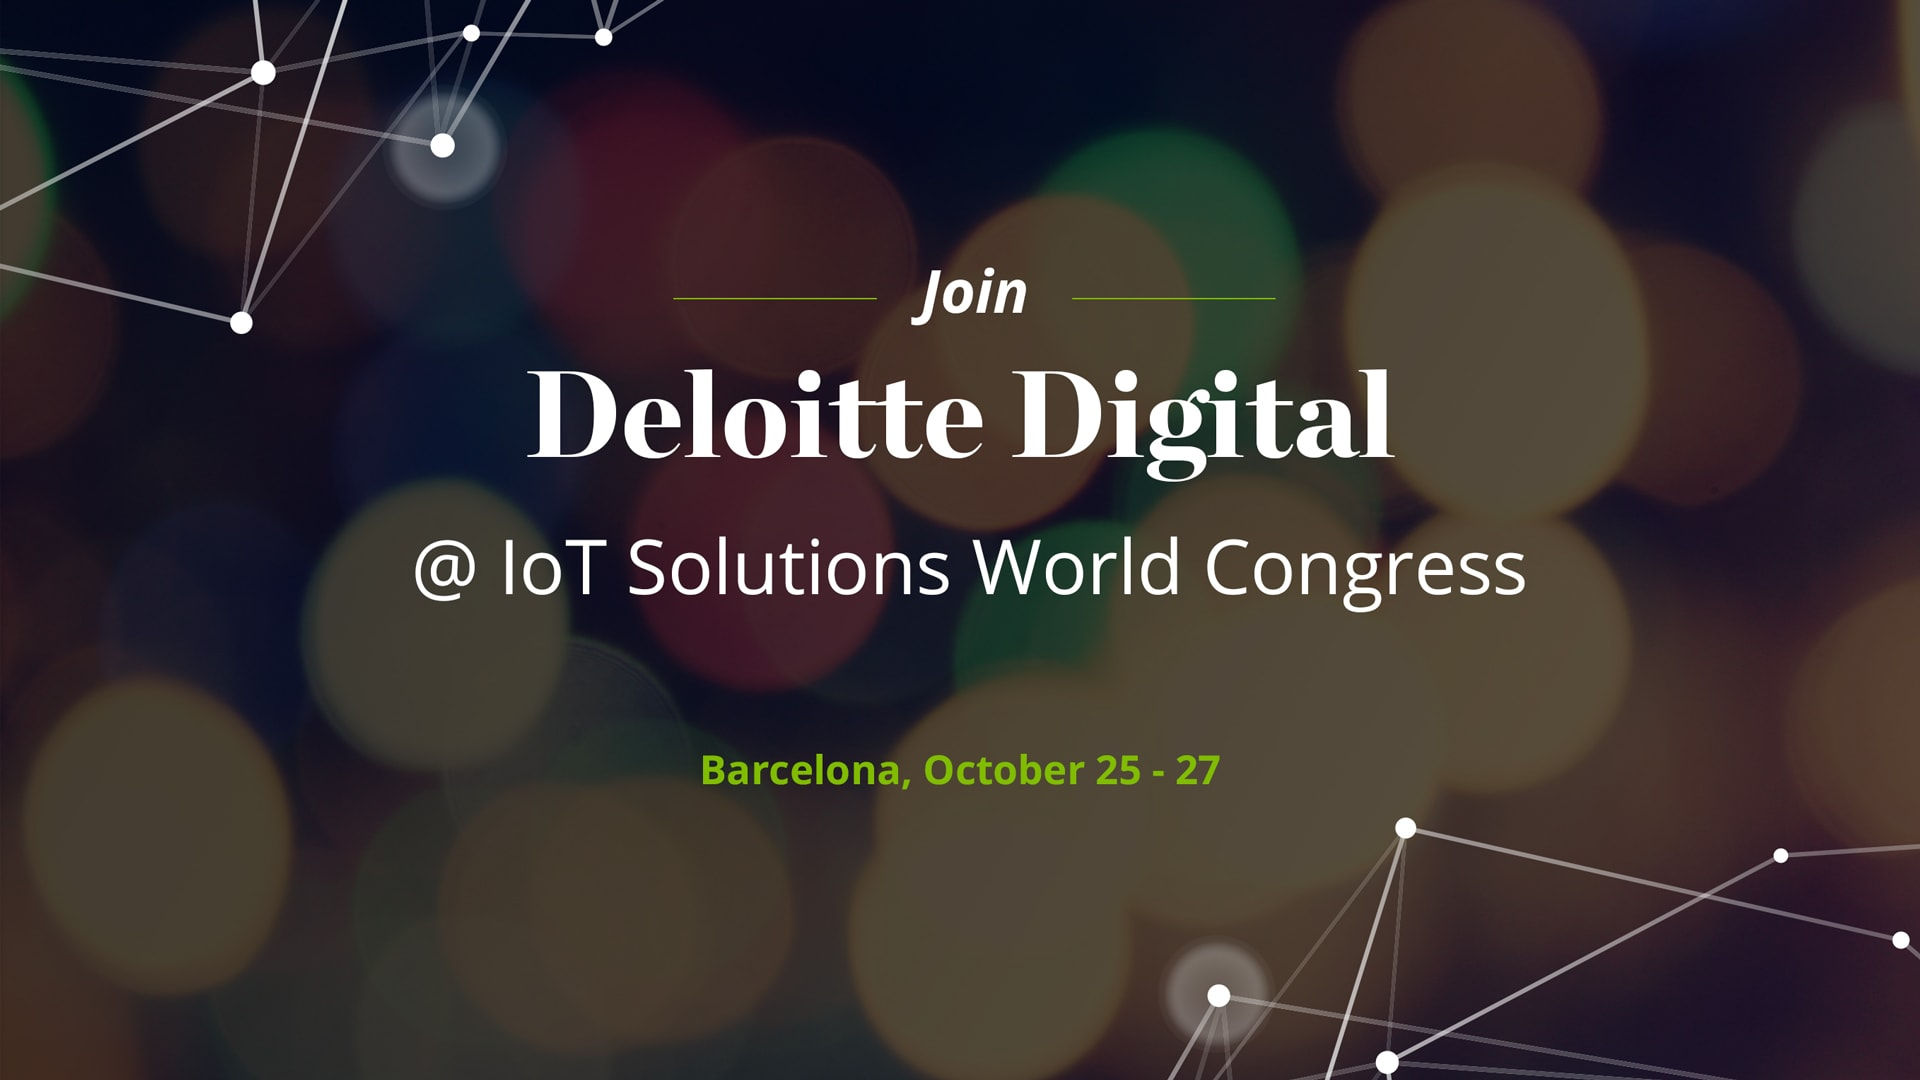 Text over image: join Deloitte Digital at IoT Solutions World Congress